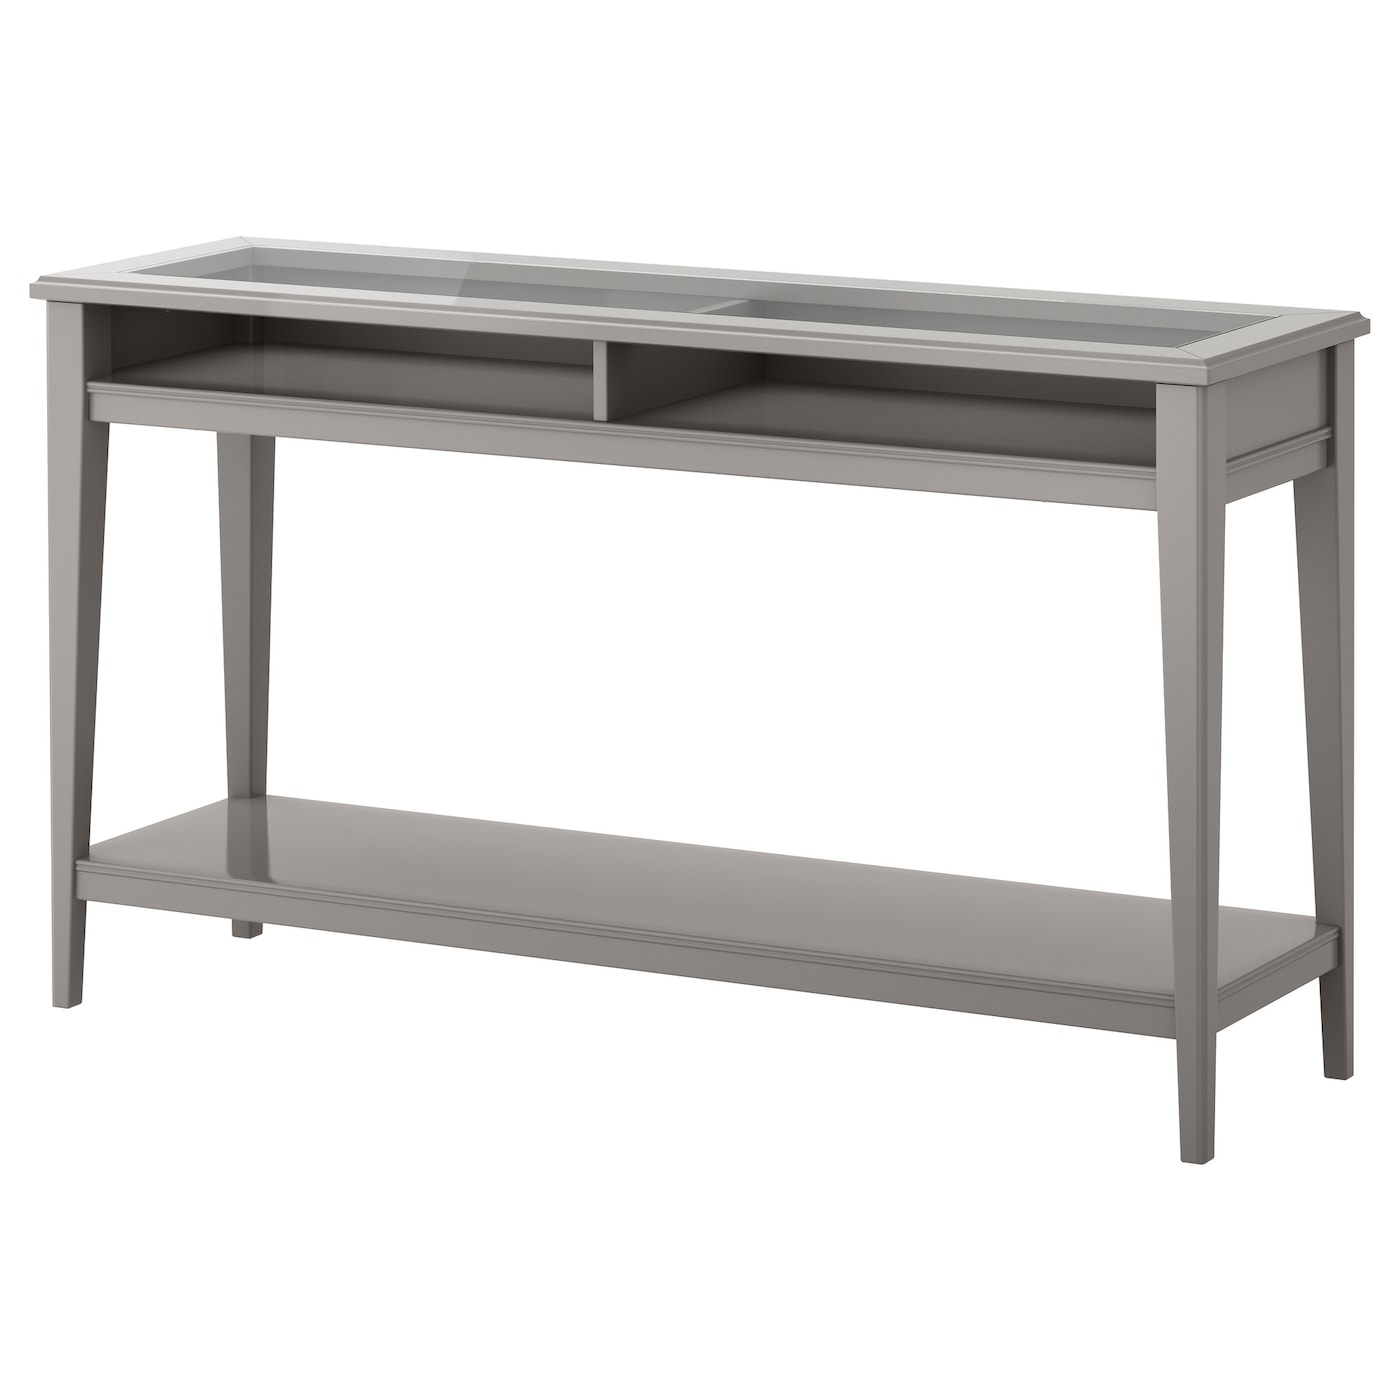 Liatorp console table grey glass 133 x 37 cm ikea for Ikea hall table